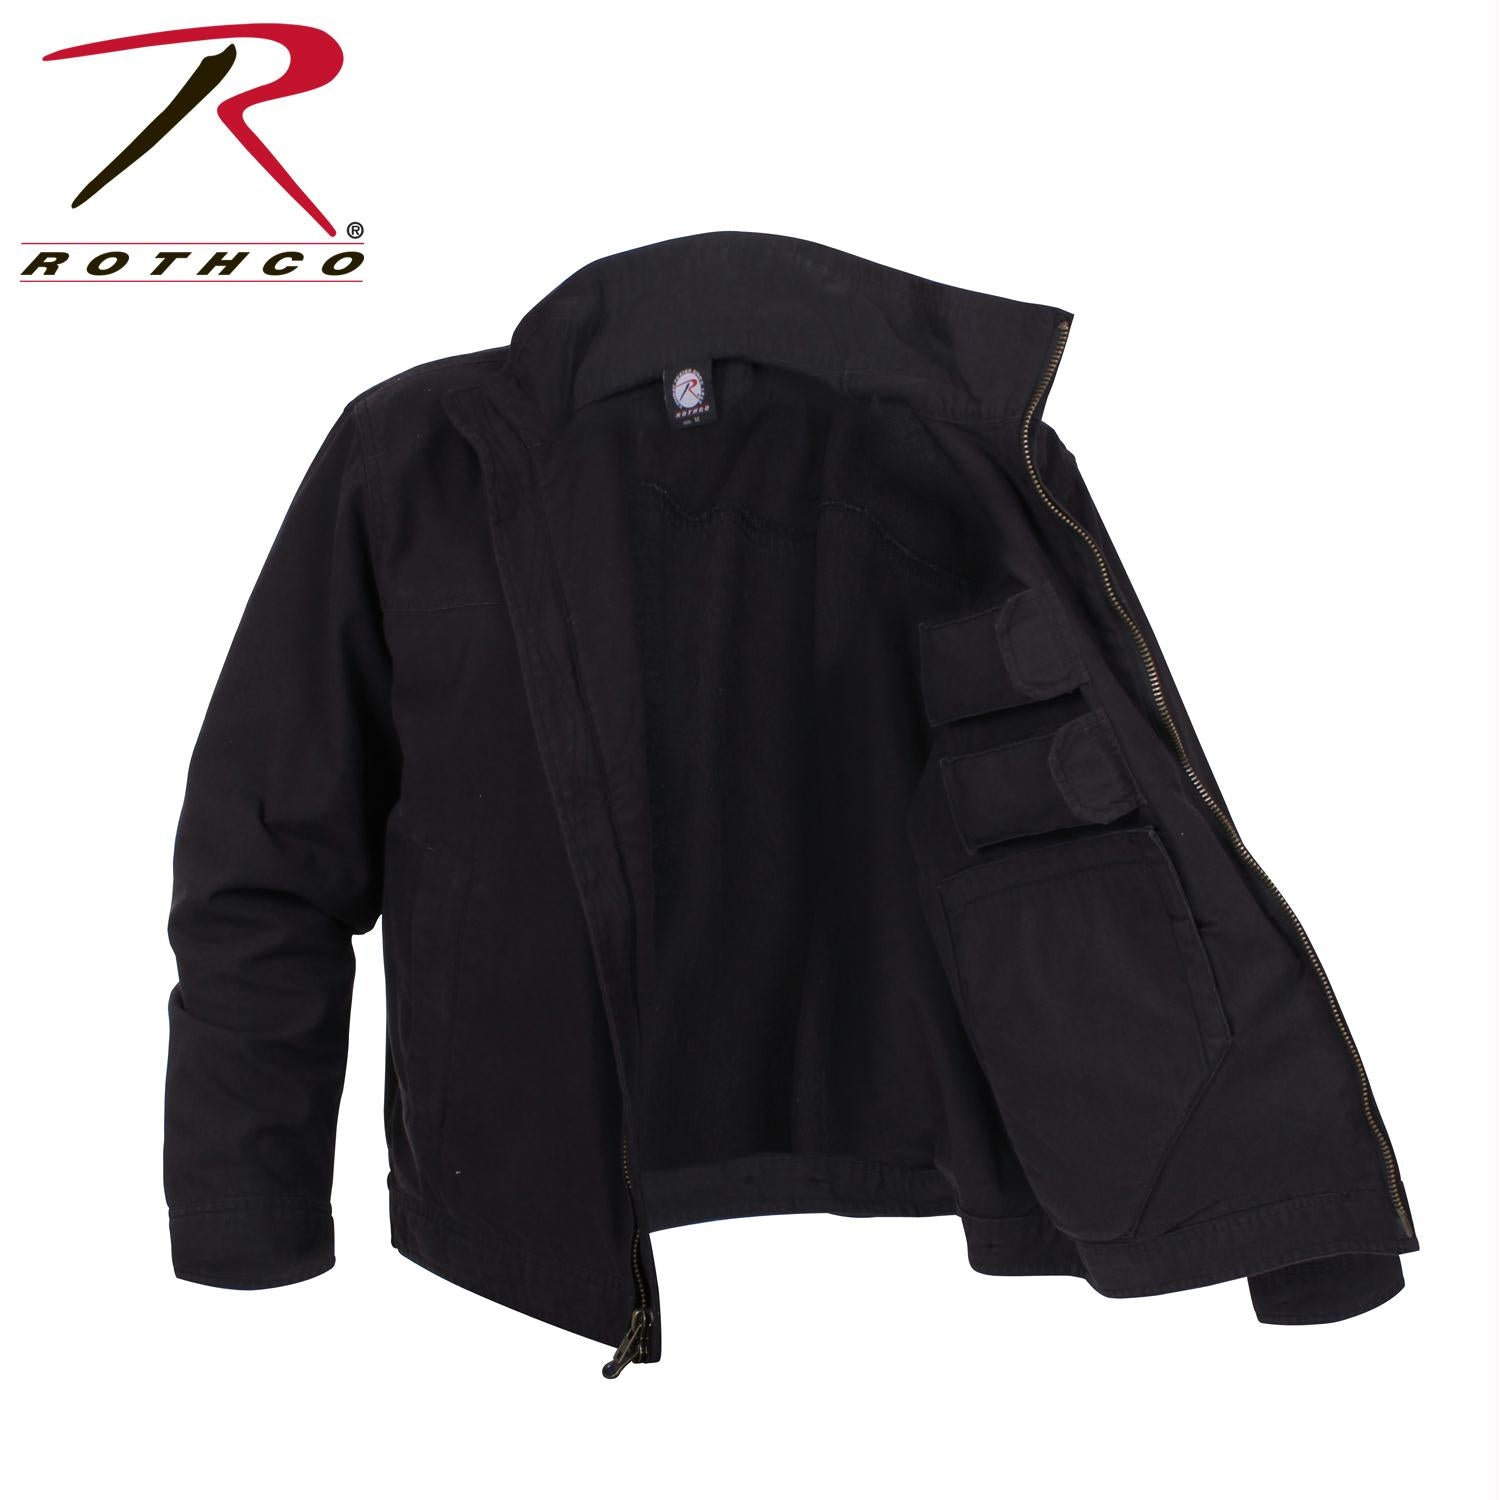 Rothco Lightweight Concealed Carry Jacket - Black / 4XL